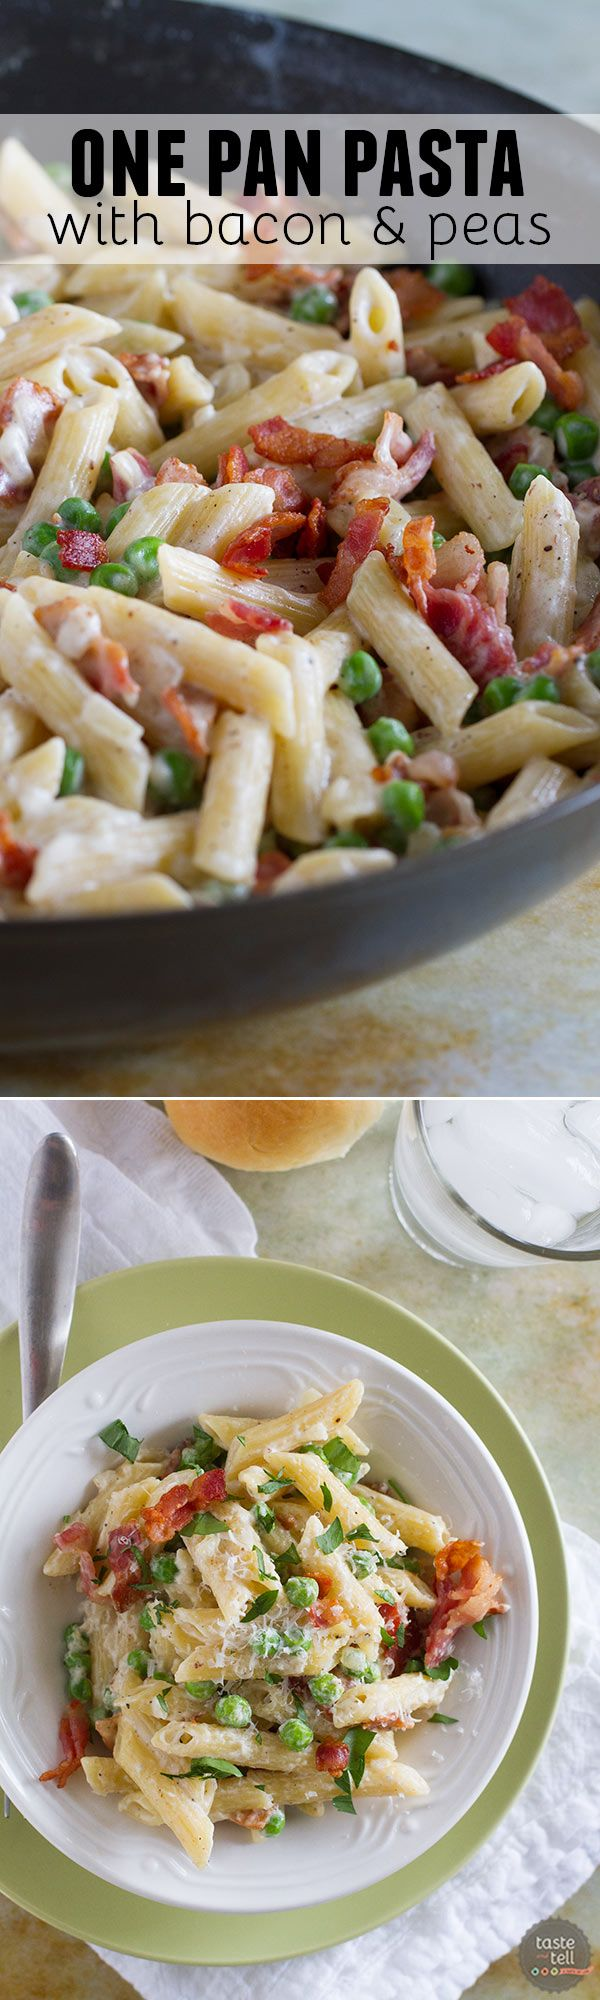 You can't beat a one pan dinner that is one the table in no time! This One Pan Pasta with Peas and Bacon is easy and flavorful and a pasta dinner that is sure to go on repeat in our house!: